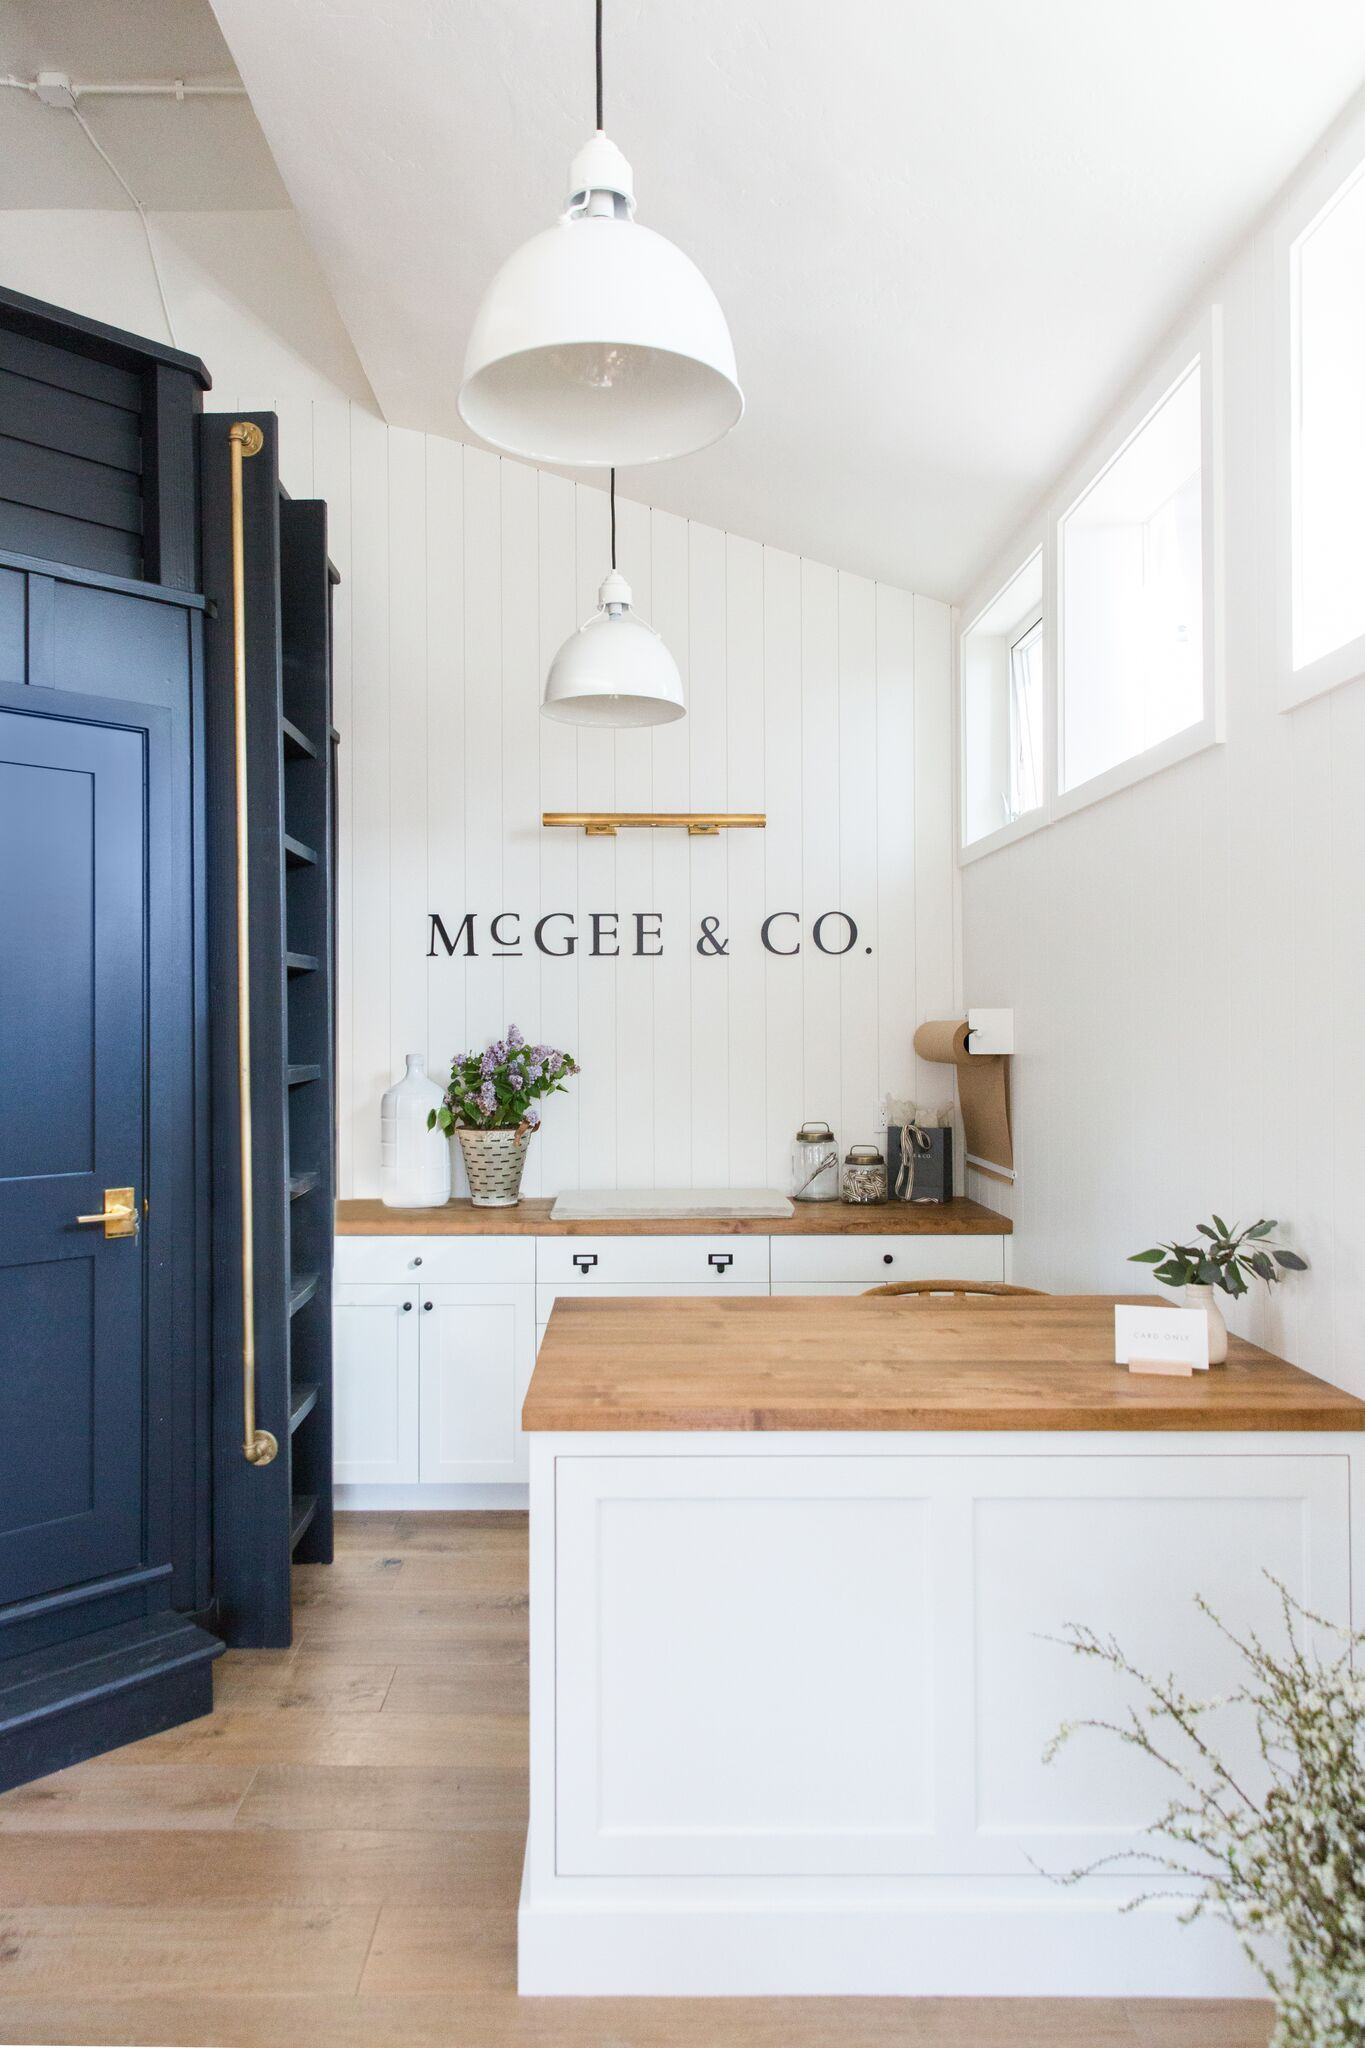 McGee & Co. Storefront Photo Tour | Mesas, Lights and Benjamin moore